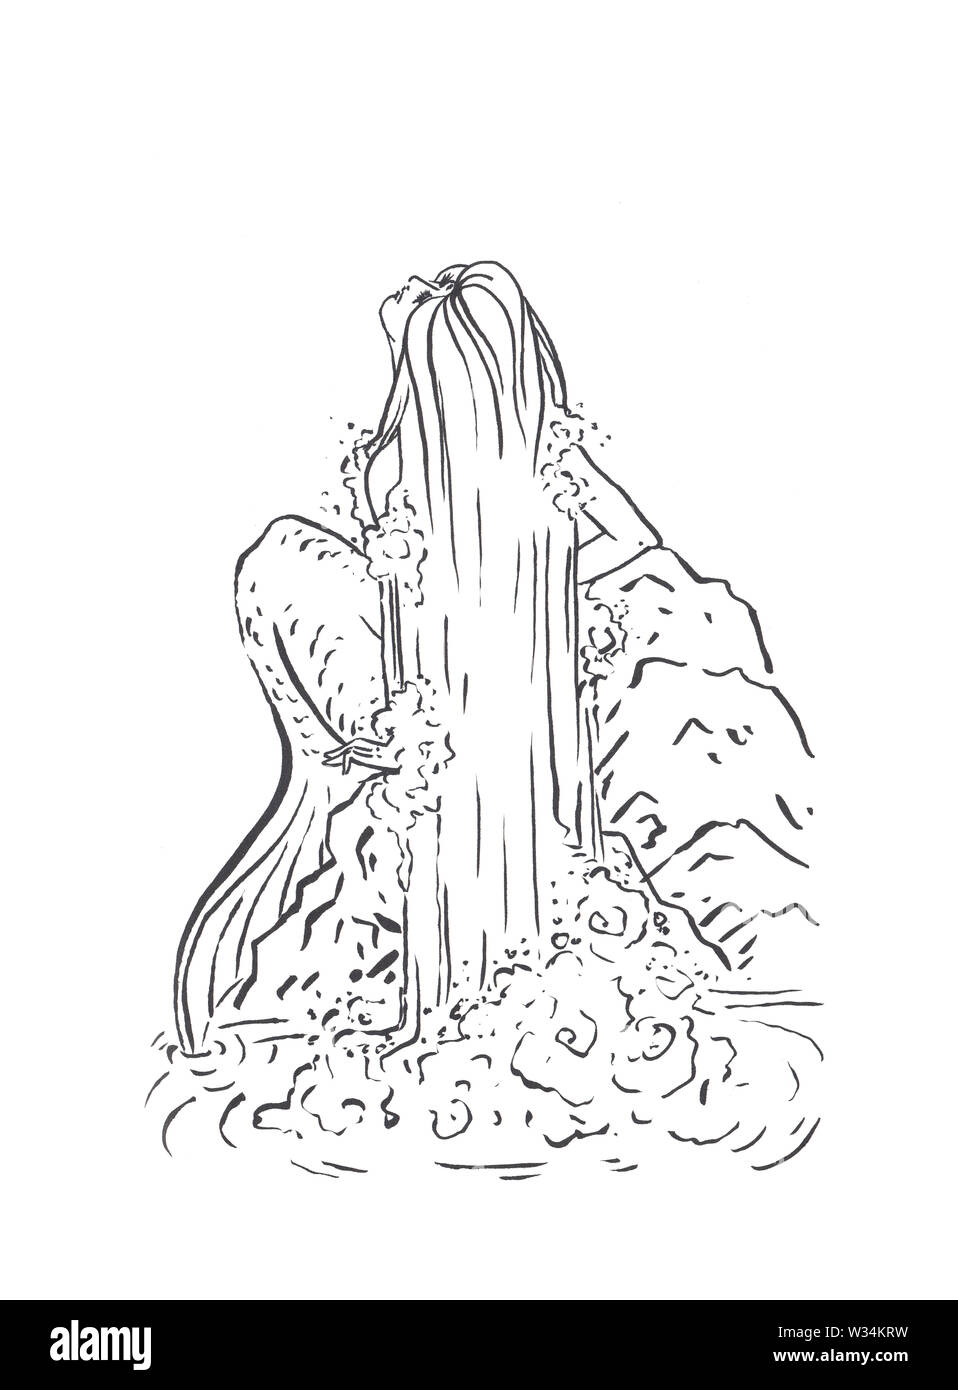 Mermaid Illustration Black Isolated On White Coloring Page Or Fairy